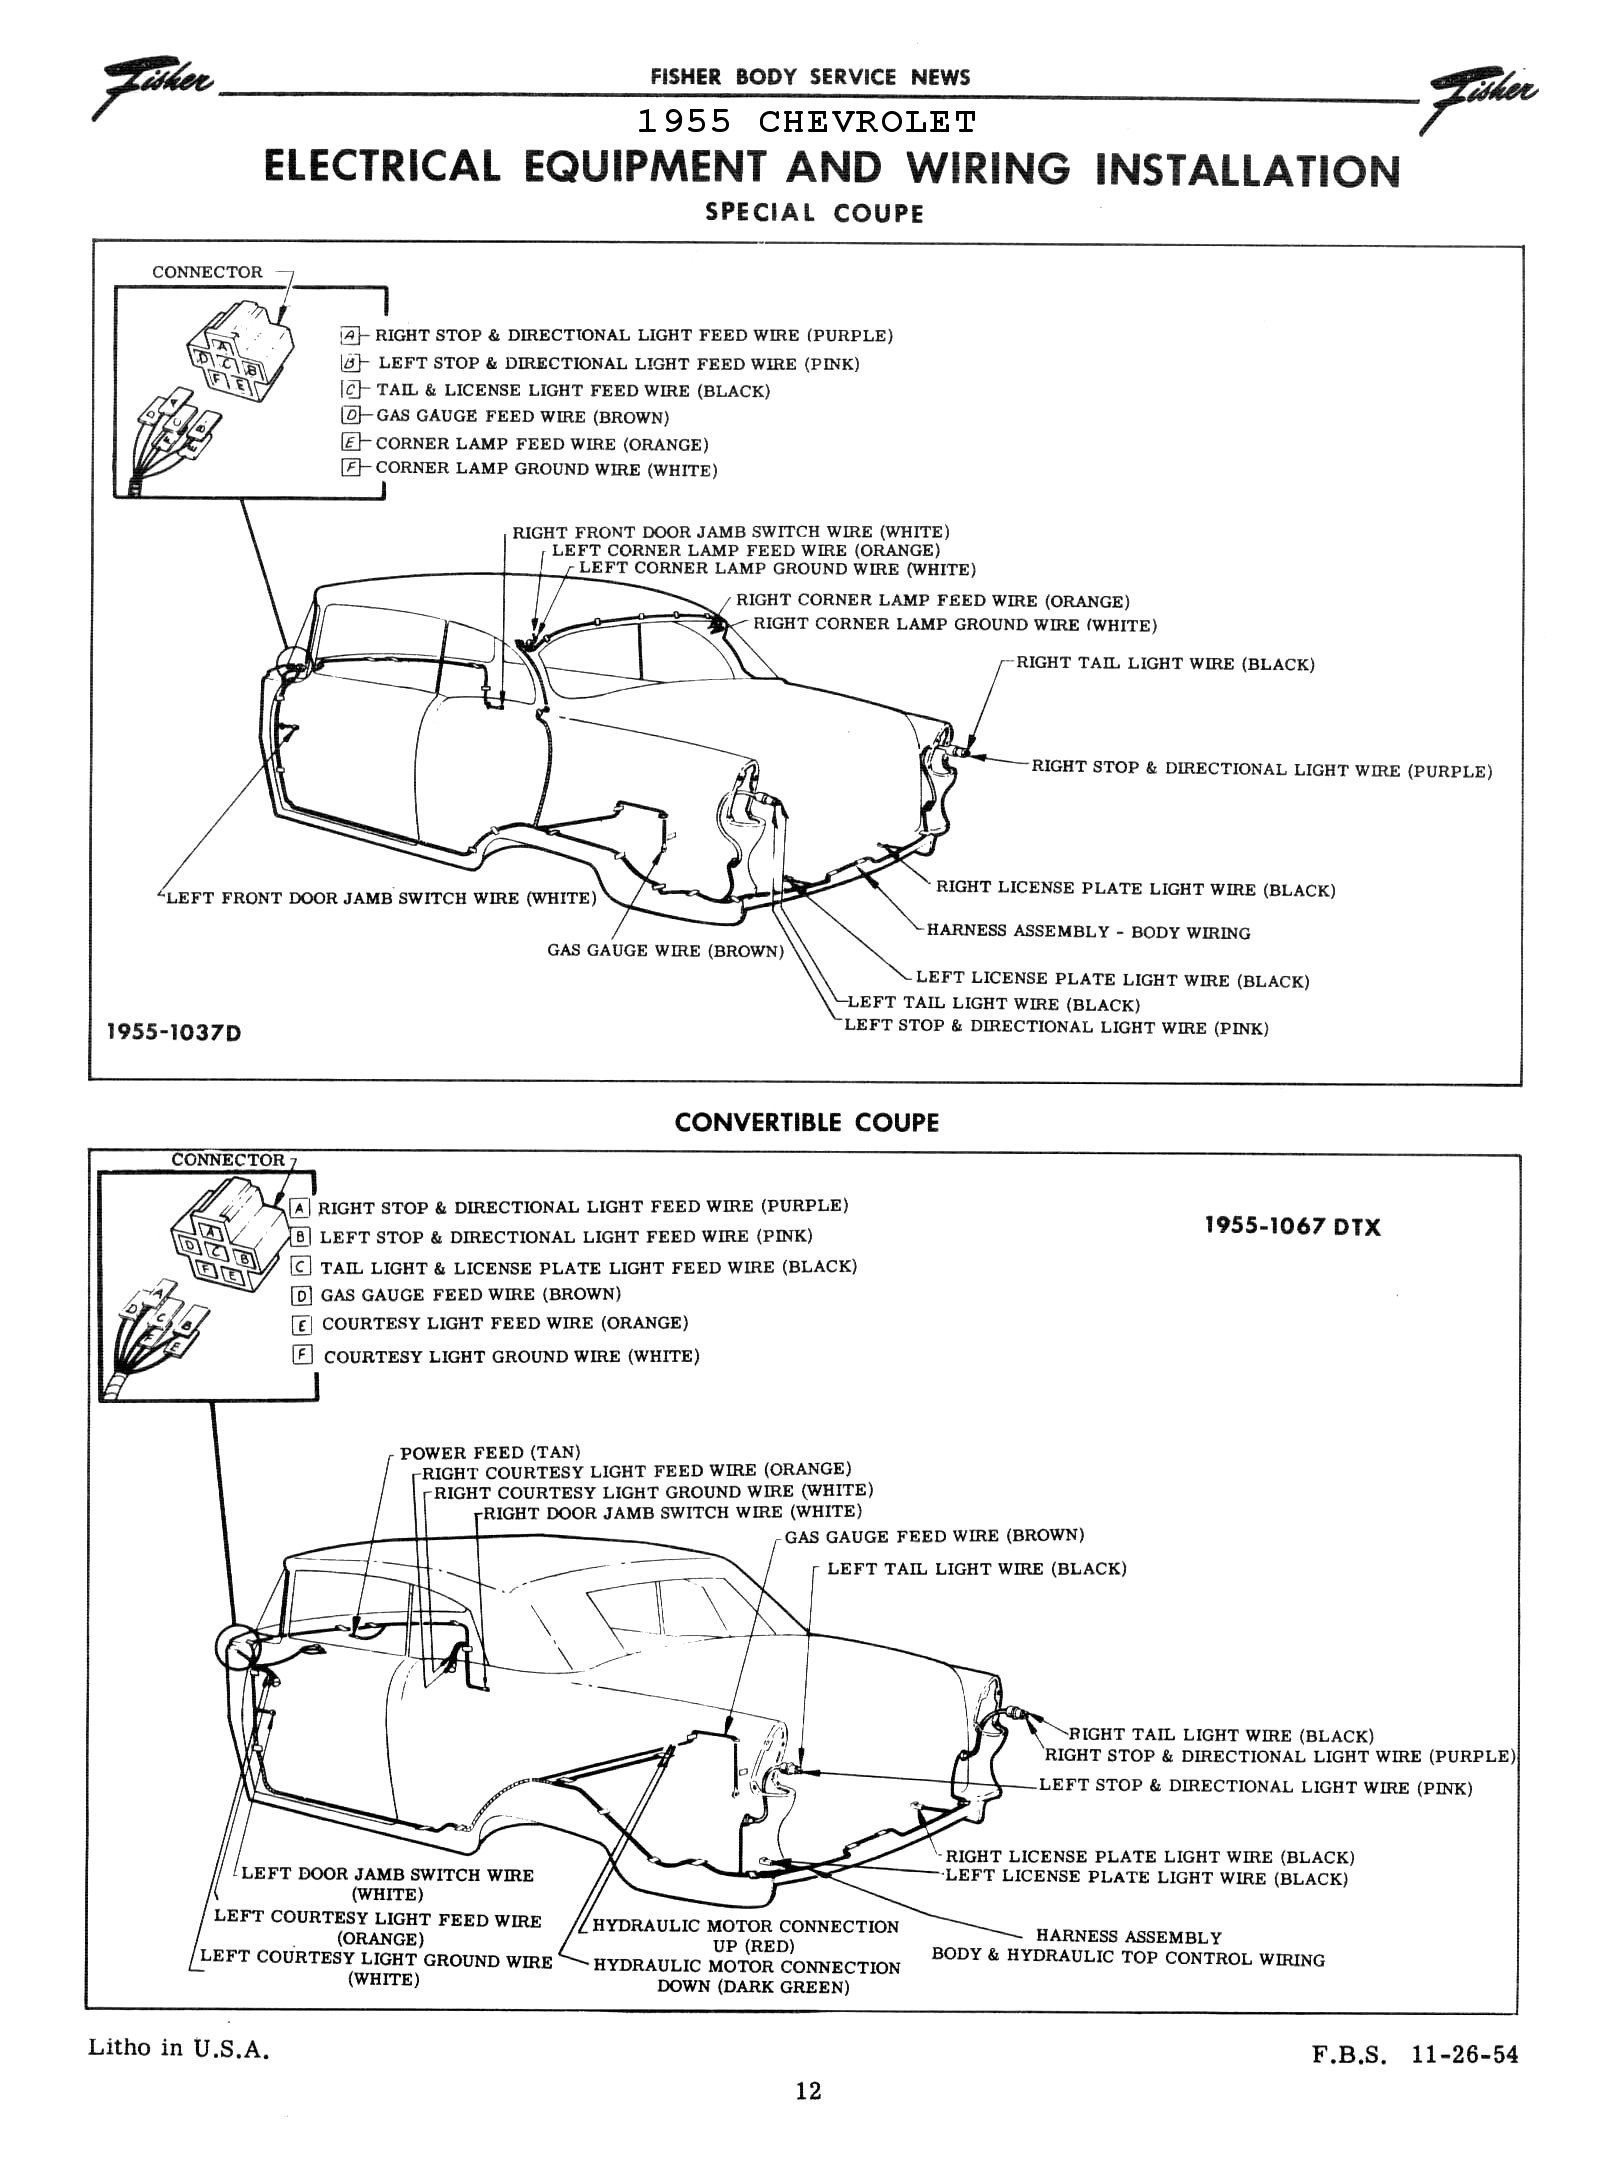 54 Chevy Truck Wiring Diagram Trusted 1965 Ford F100 Electrical Diagrams 56 1955 Body 3